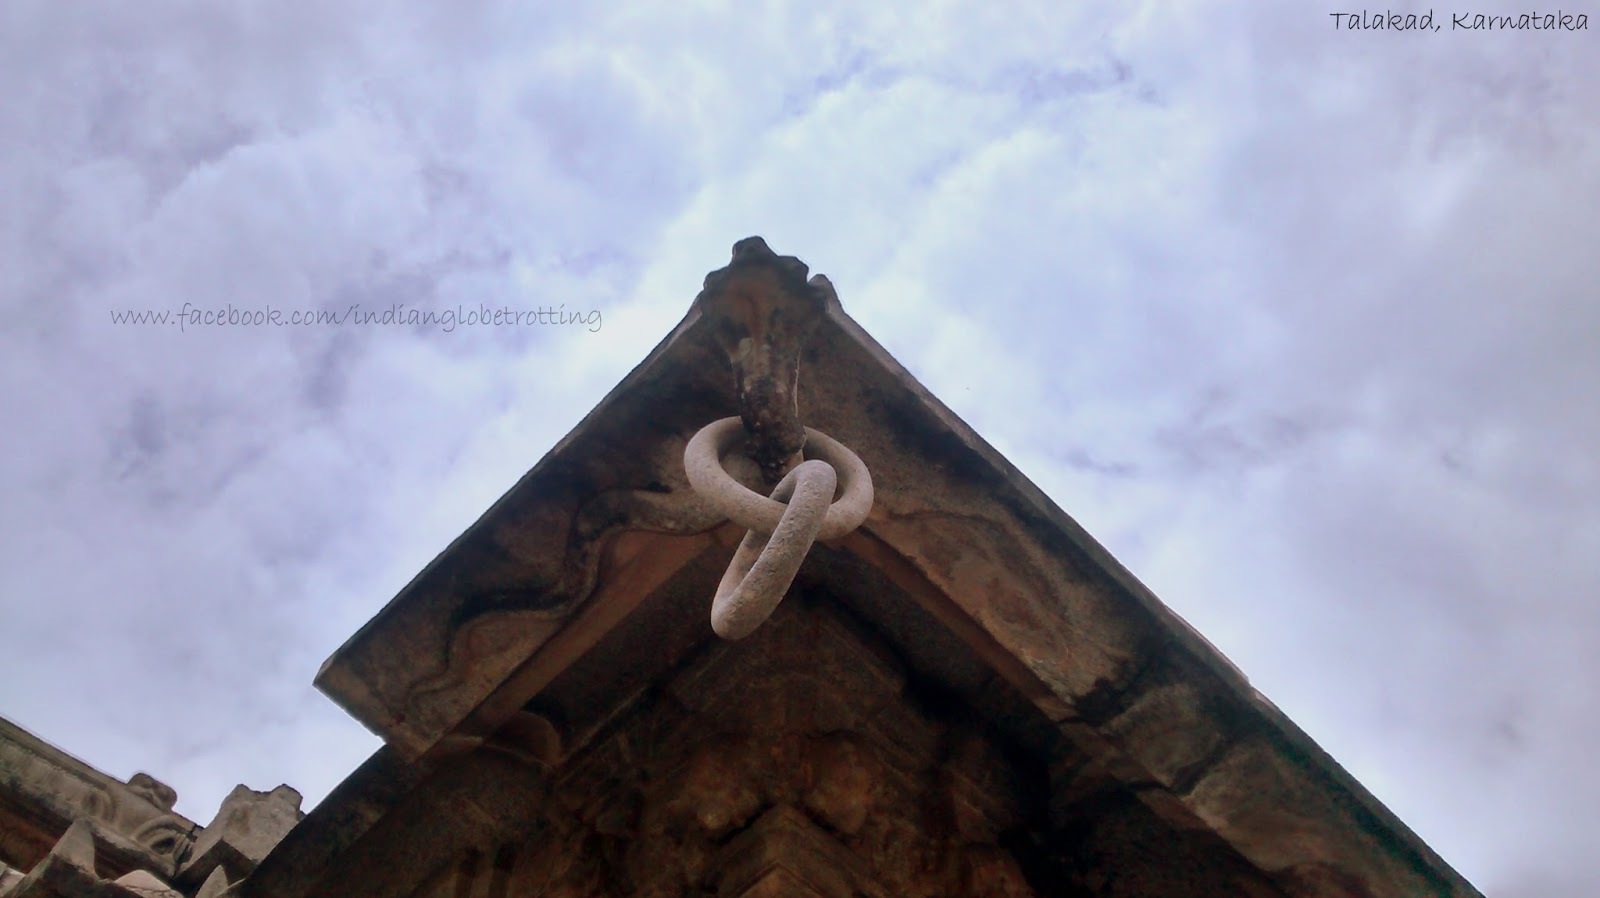 Five headed snake and stone chain made of single rock in talakad temple